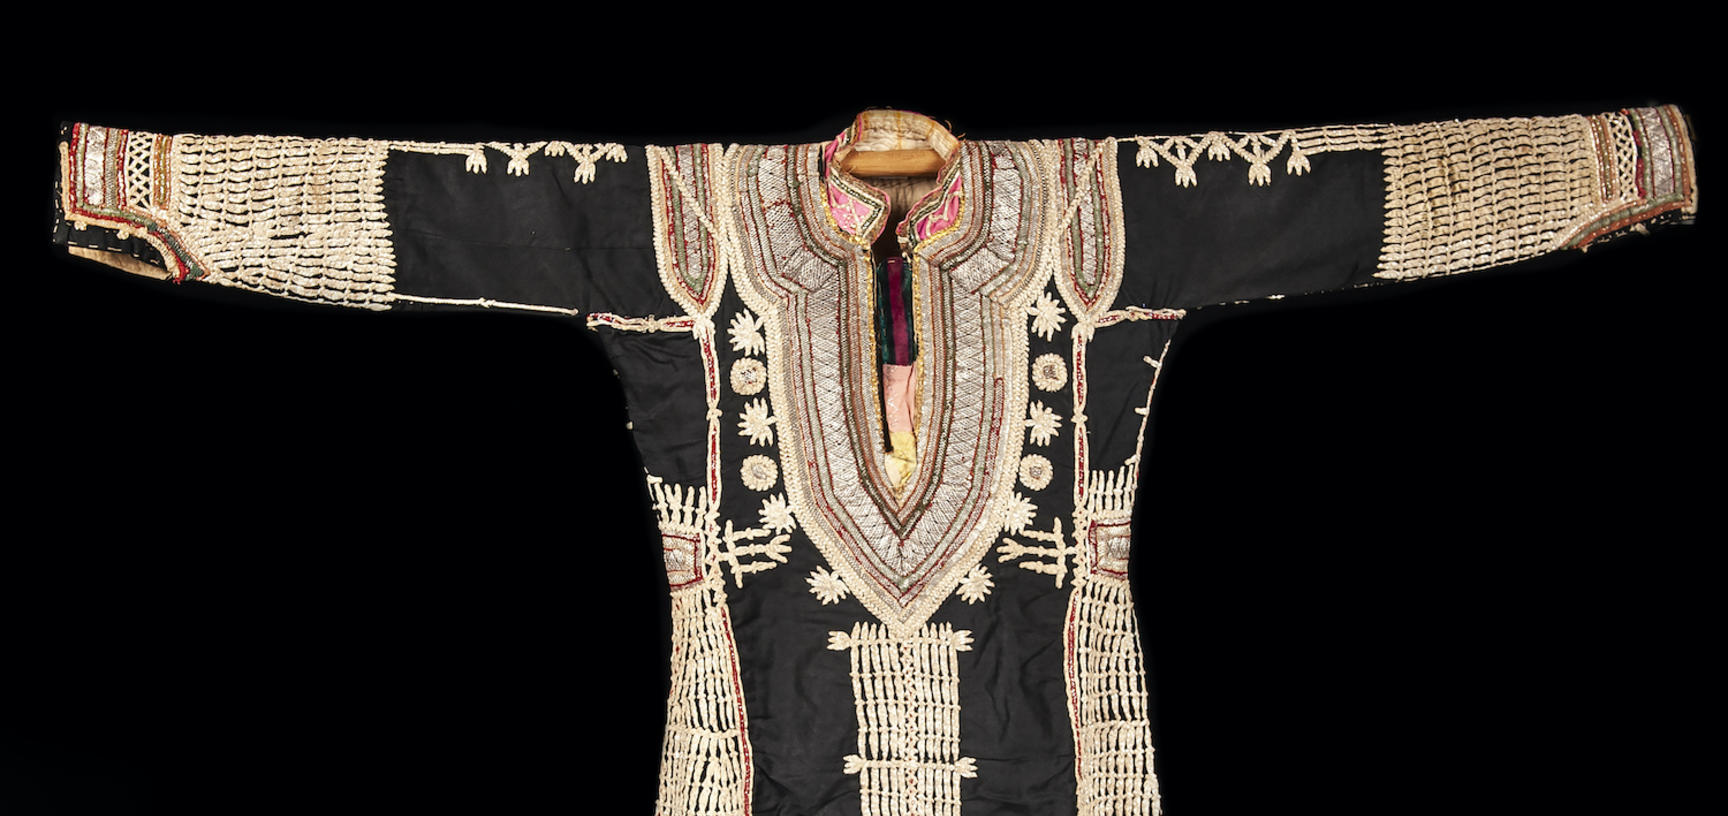 A dark long sleeve dress decorated with gold embroidery.